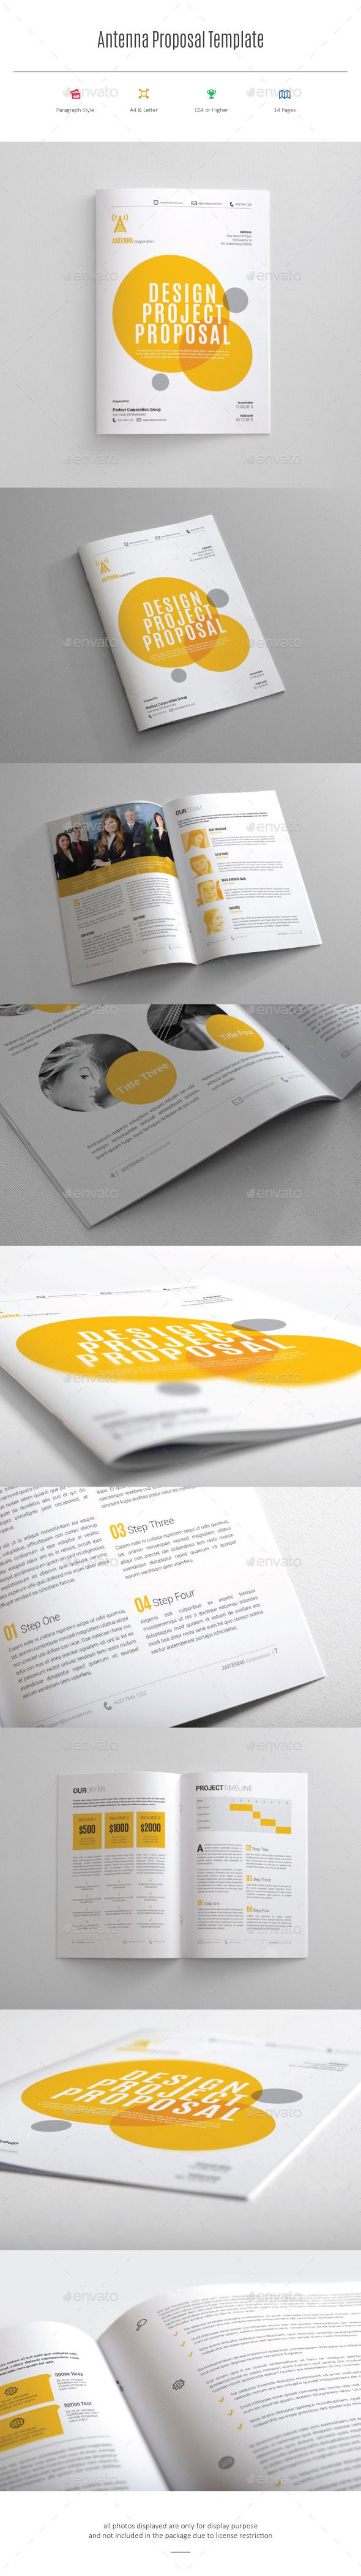 Indesign Proposal Template | Proposal templates, Proposals and Template